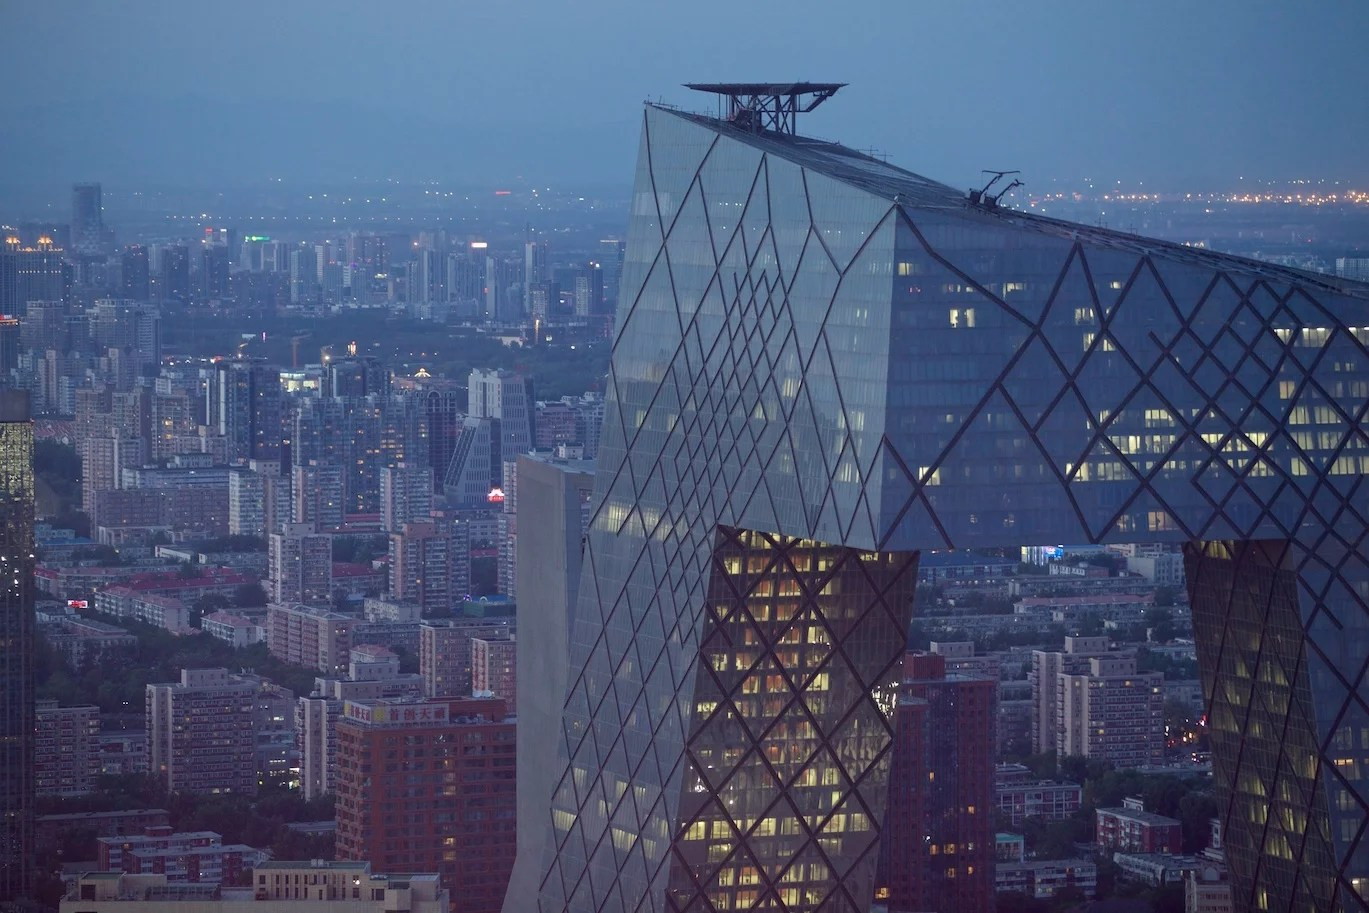 cctv-headquarters-1 copy